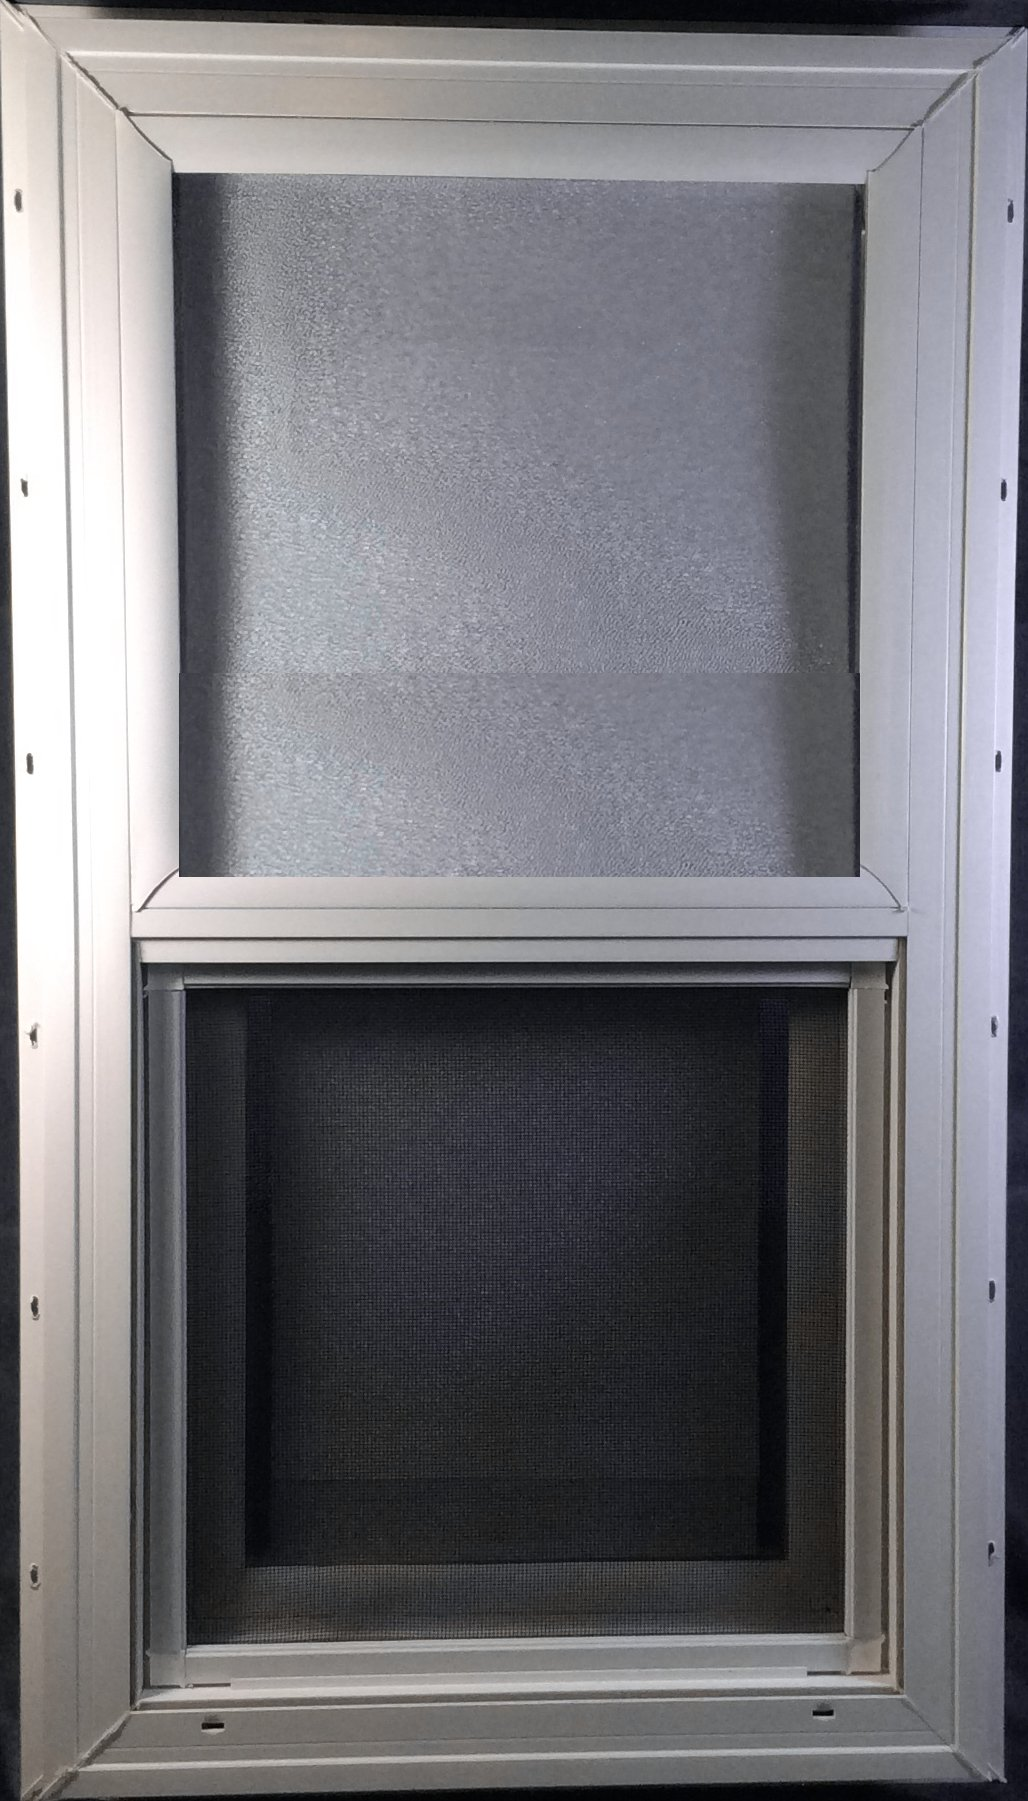 Mobile Home Window 14X27 Insulated Vinyl Thermopane Lower Tilt Sash Screen Included by Kinro